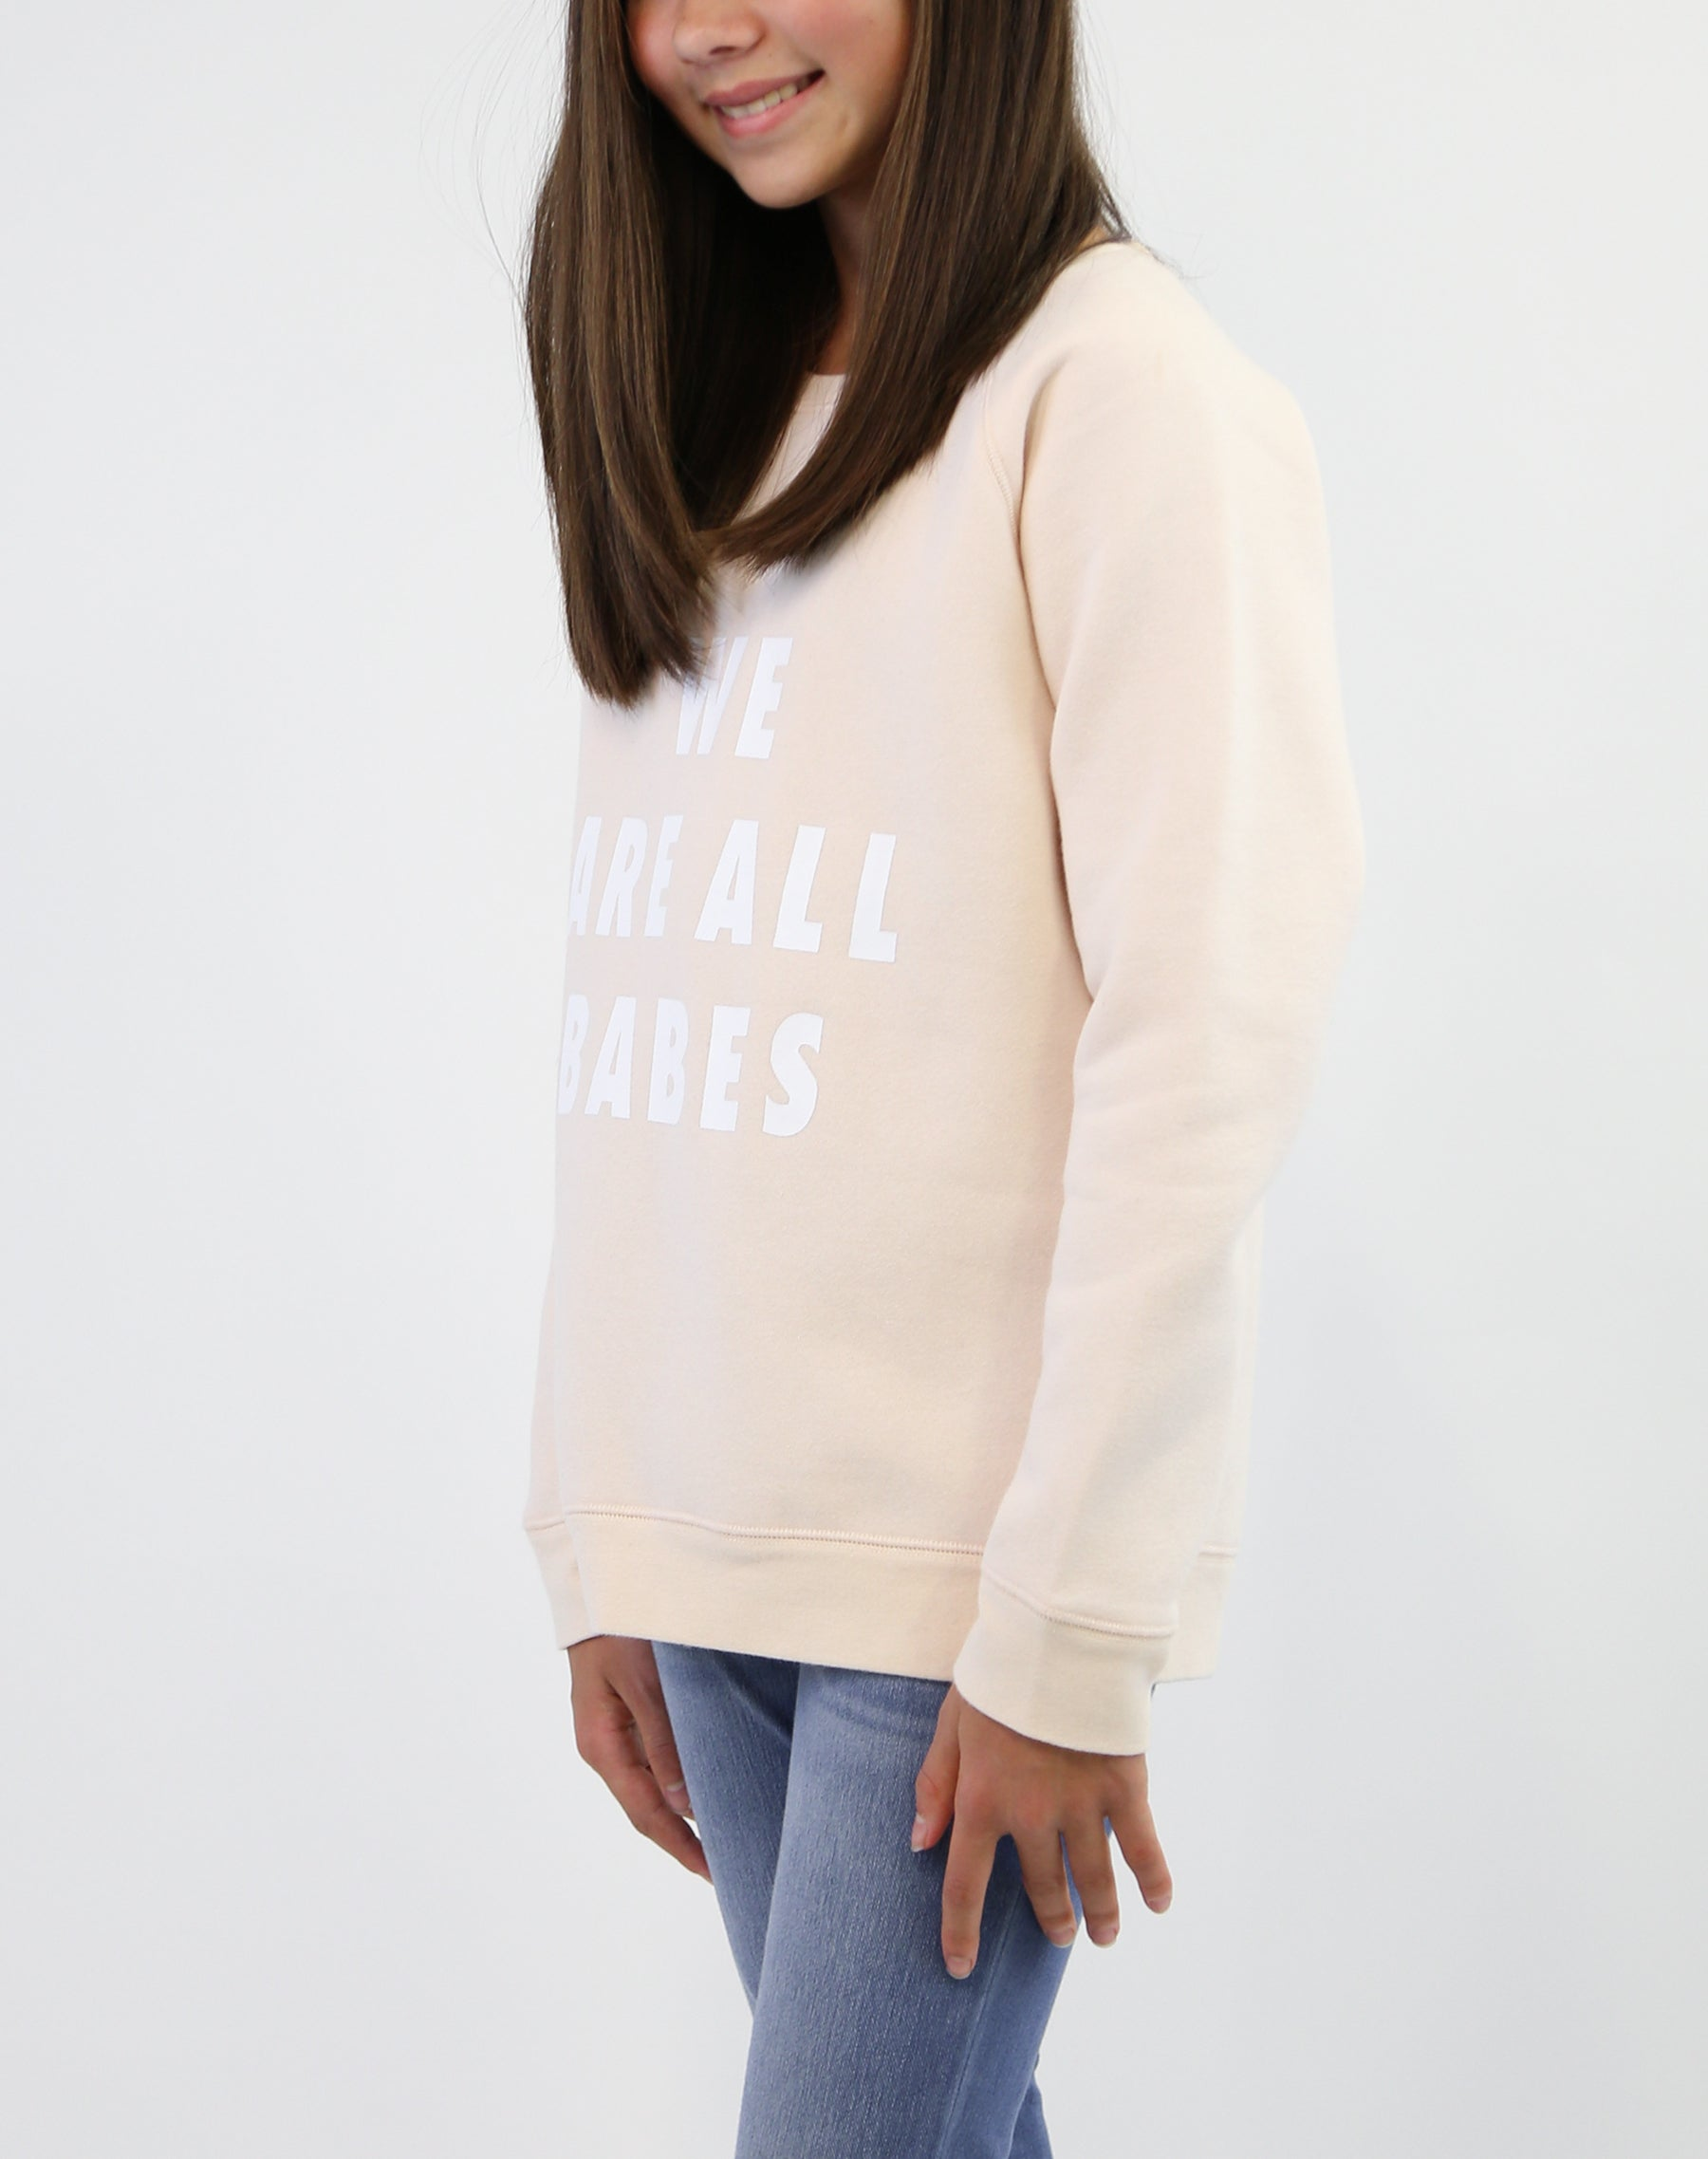 Photo 3 of child wearing the We Are All Babes classic crew neck sweatshirt in peach crush by Brunette the Label.